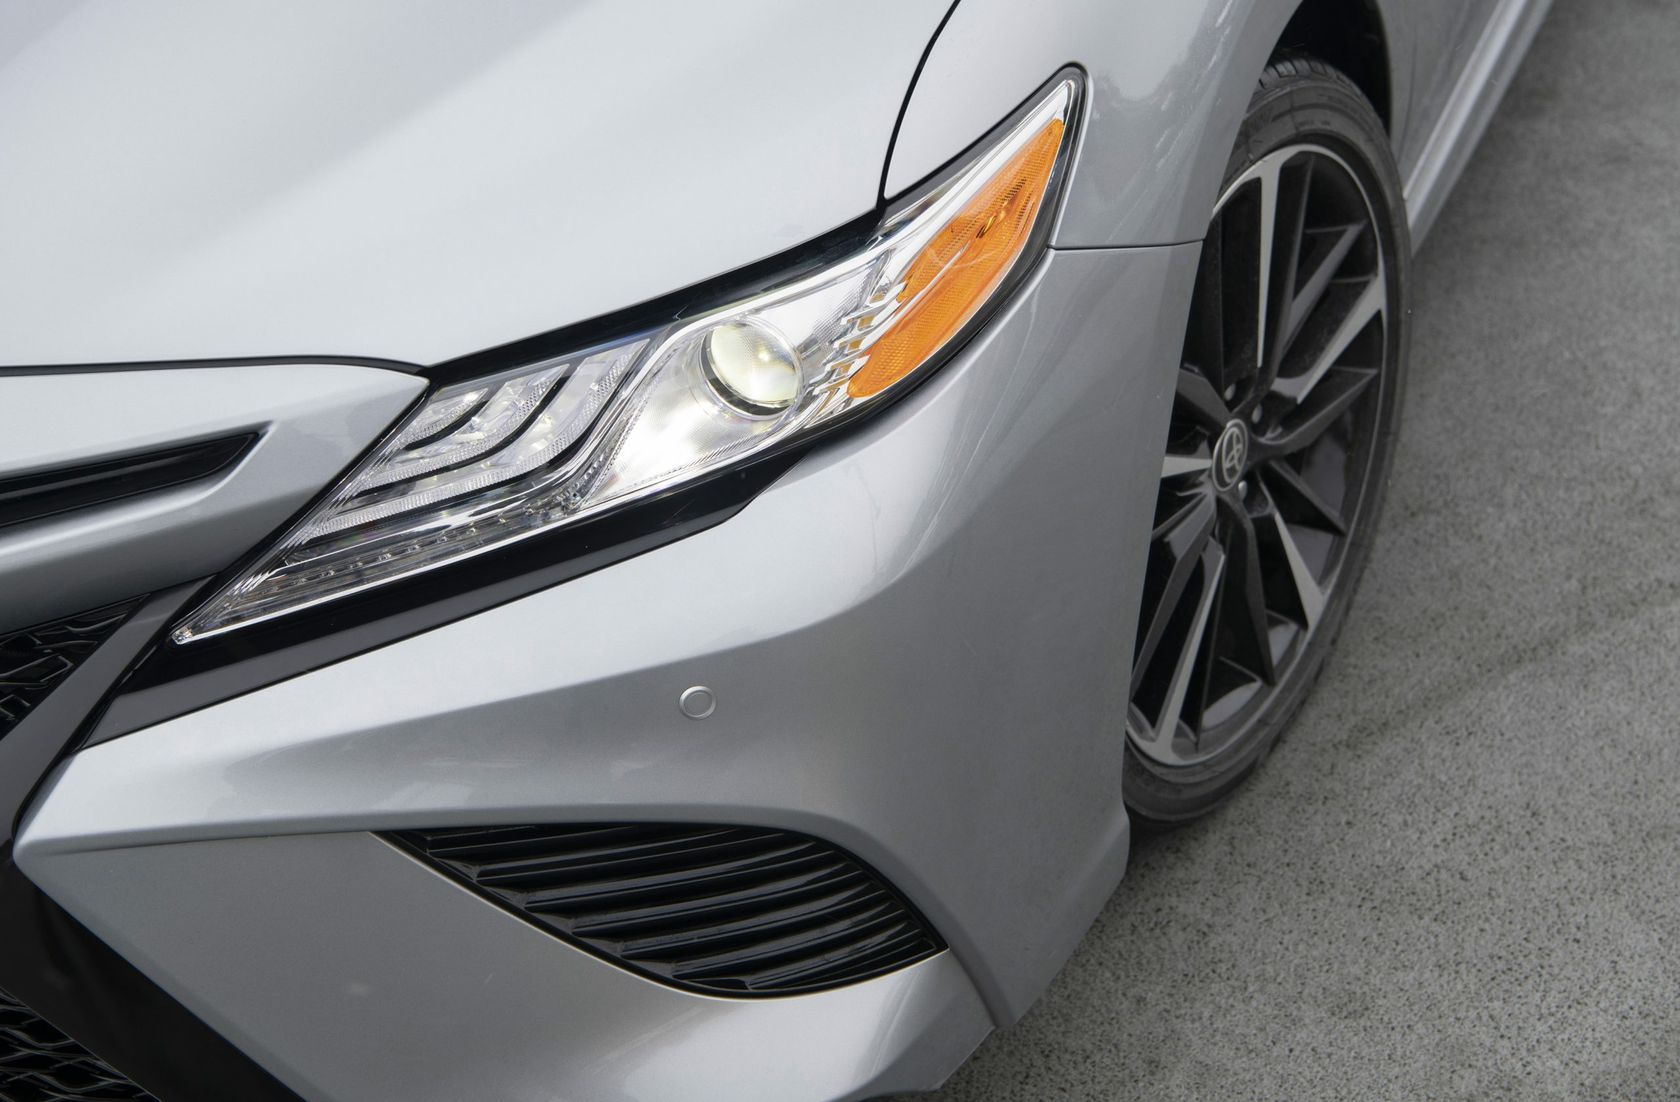 2020_Camry_XSE_AWD_Celestite-Silver_Midnight-Black-Metallic-Roof_025-scaled